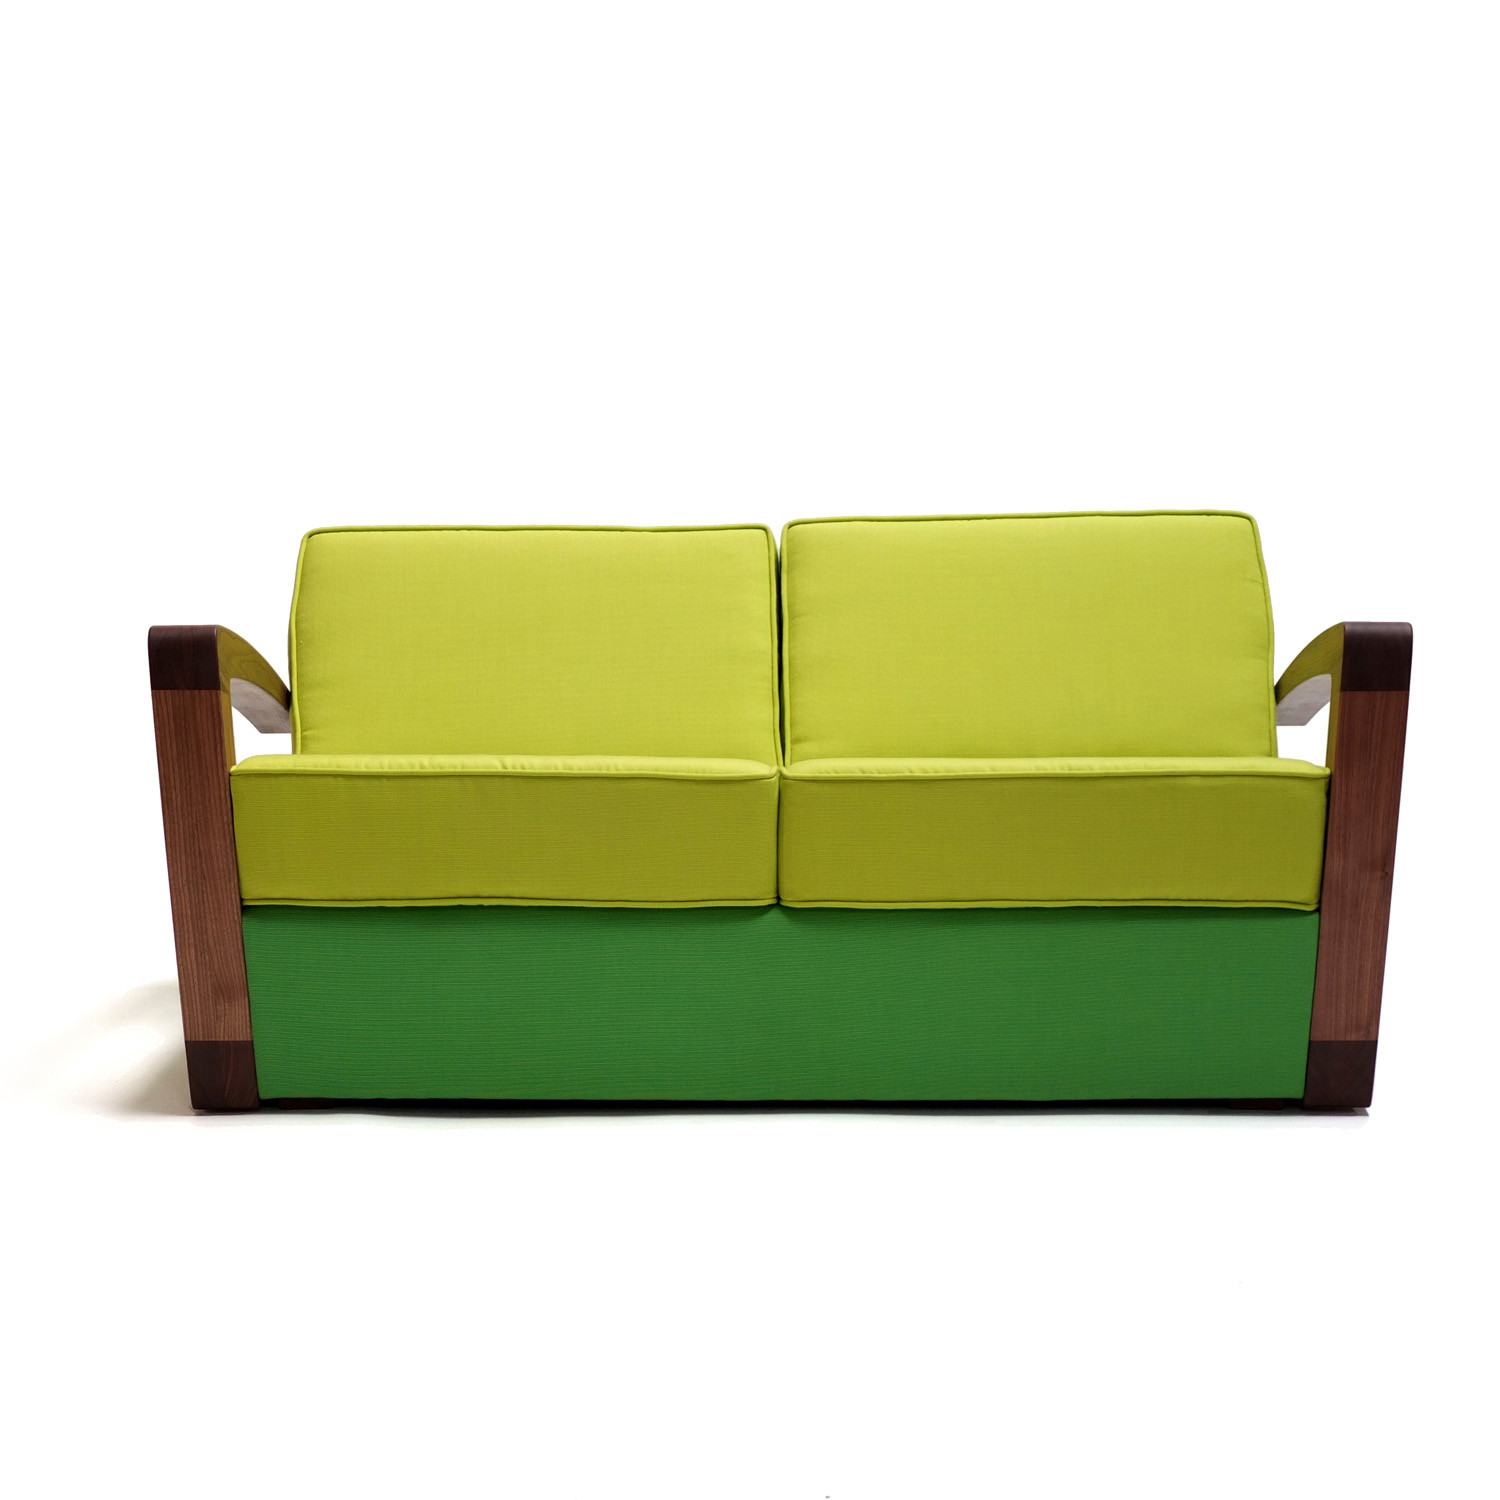 Bark Furniture Kustom Sofa